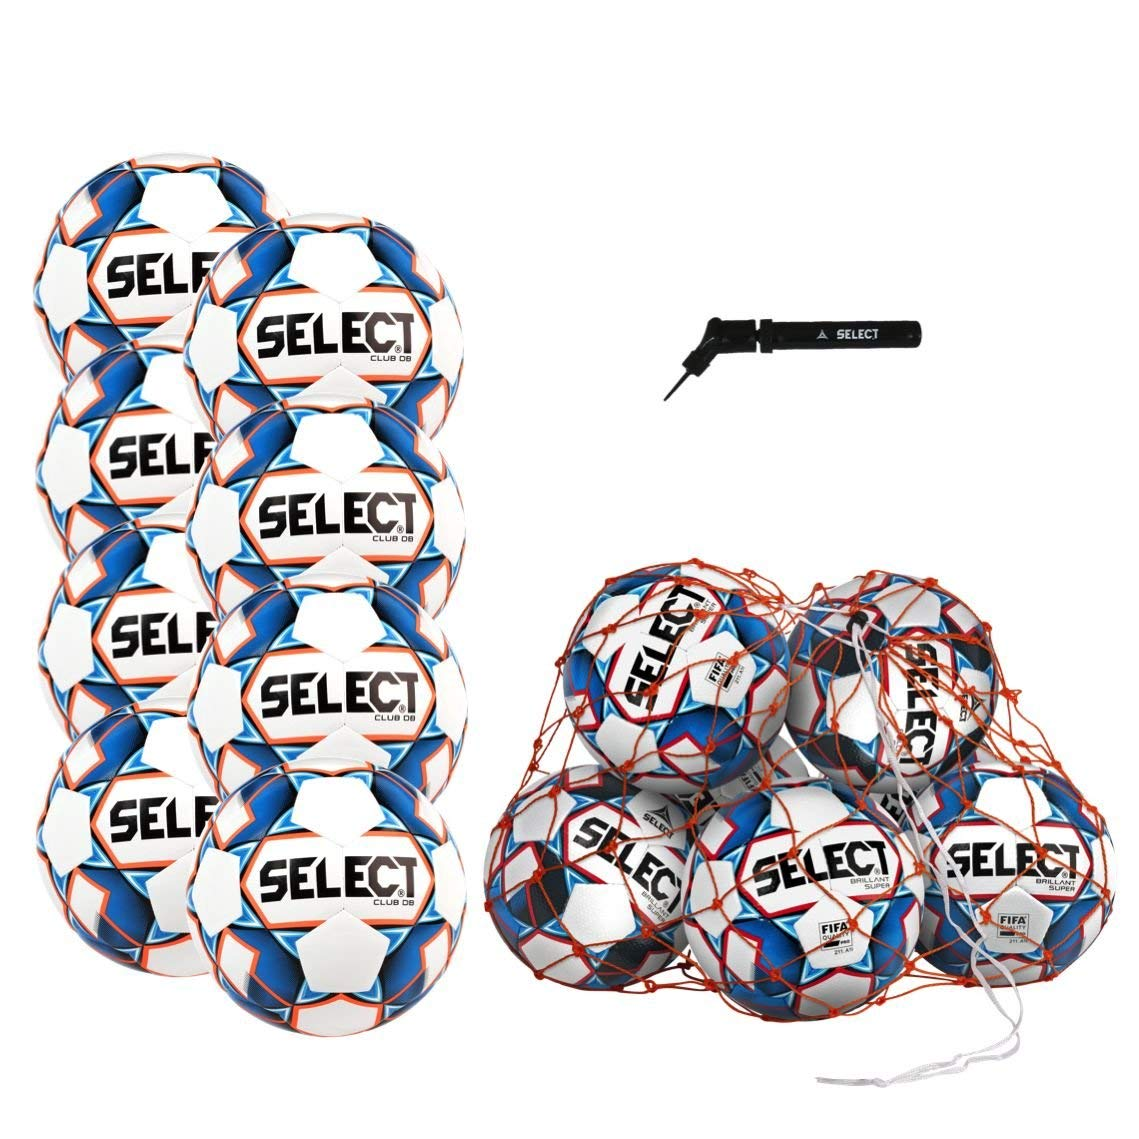 Select Club DB Soccer Ball Package - Pack of 8 Soccer Balls Ball Net Hand Pump, White/Blue, Size 5